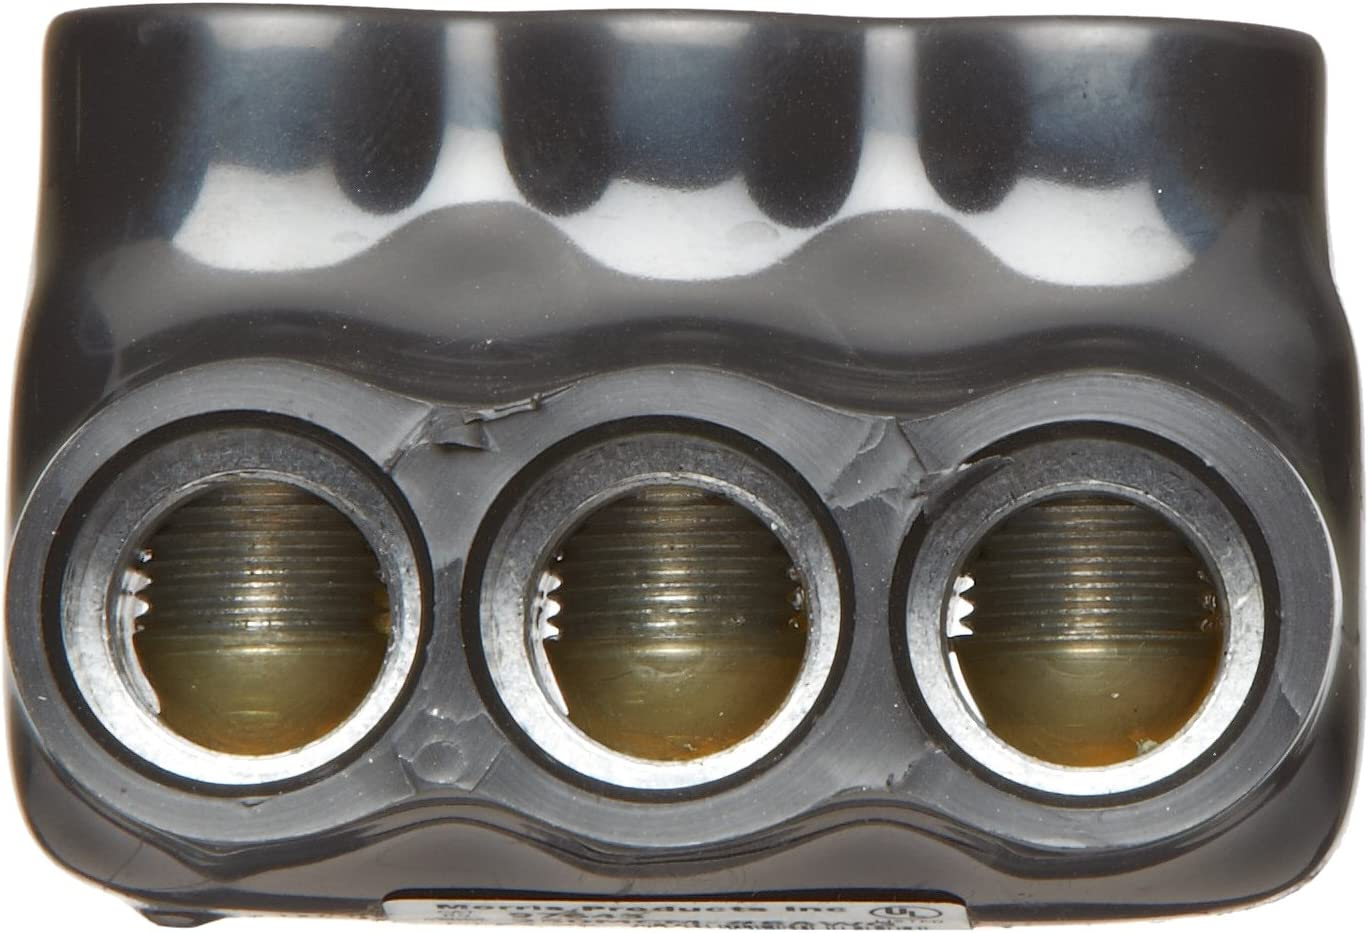 6 Ports Dual Entry Black 3//8 Allen Hex Morris Products 97876 Mountable Multi-Cable Connector 750-250 Wire Range Insulated